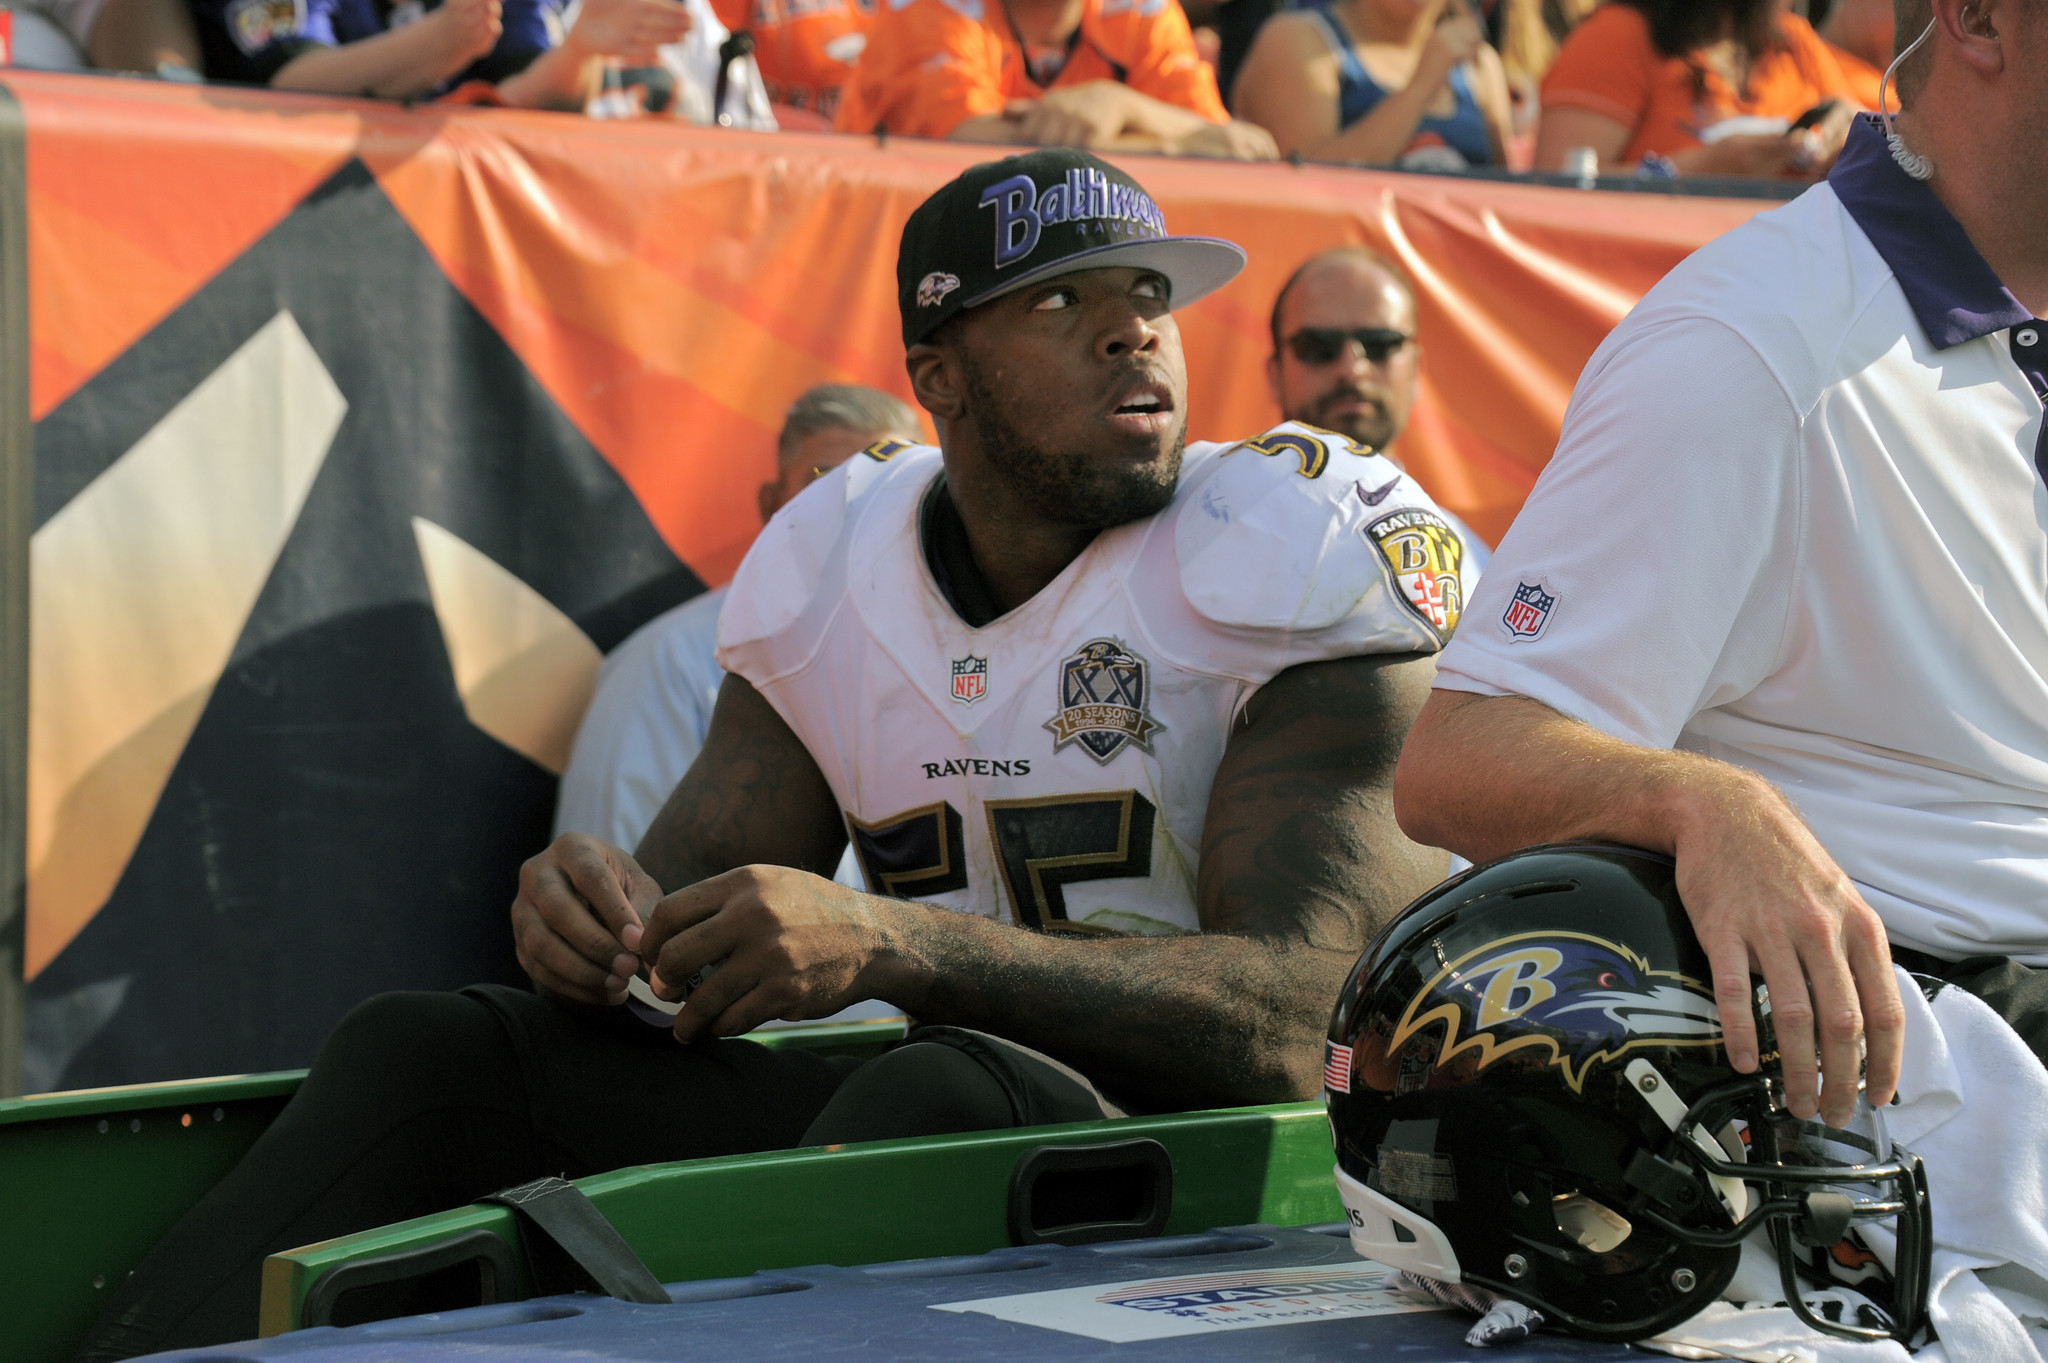 Ravens linebacker Terrell Suggs tears Achilles is out for rest of